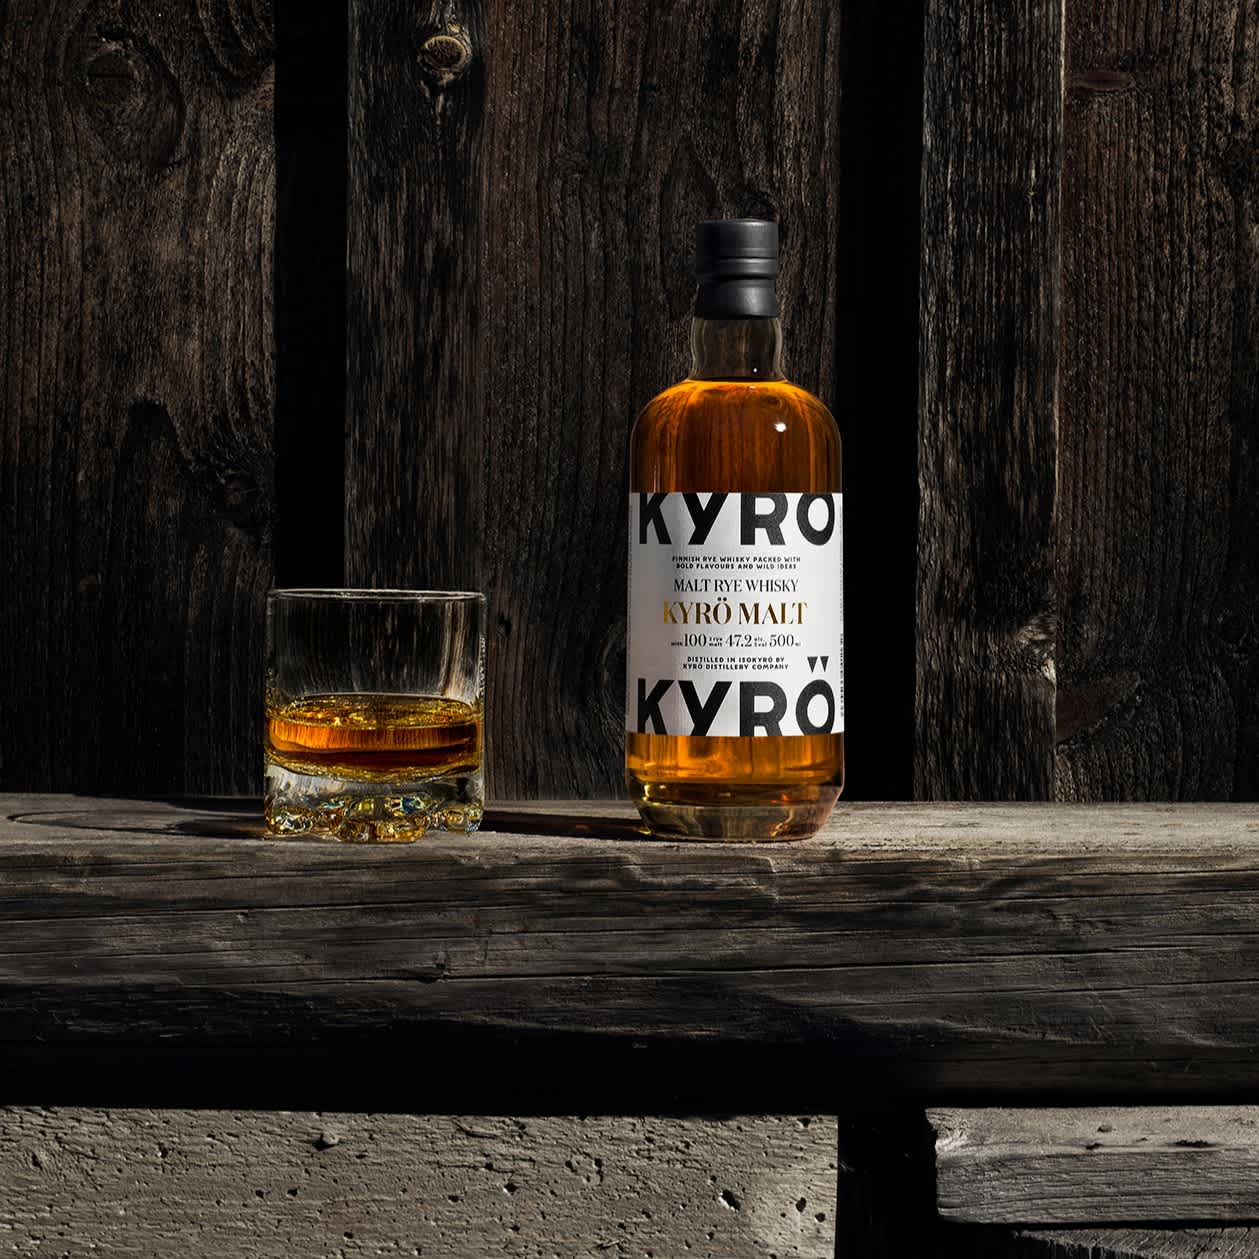 Bottle of Kyrö Malt Rye whisky and a shot of whisky neat placed on a wooden bench